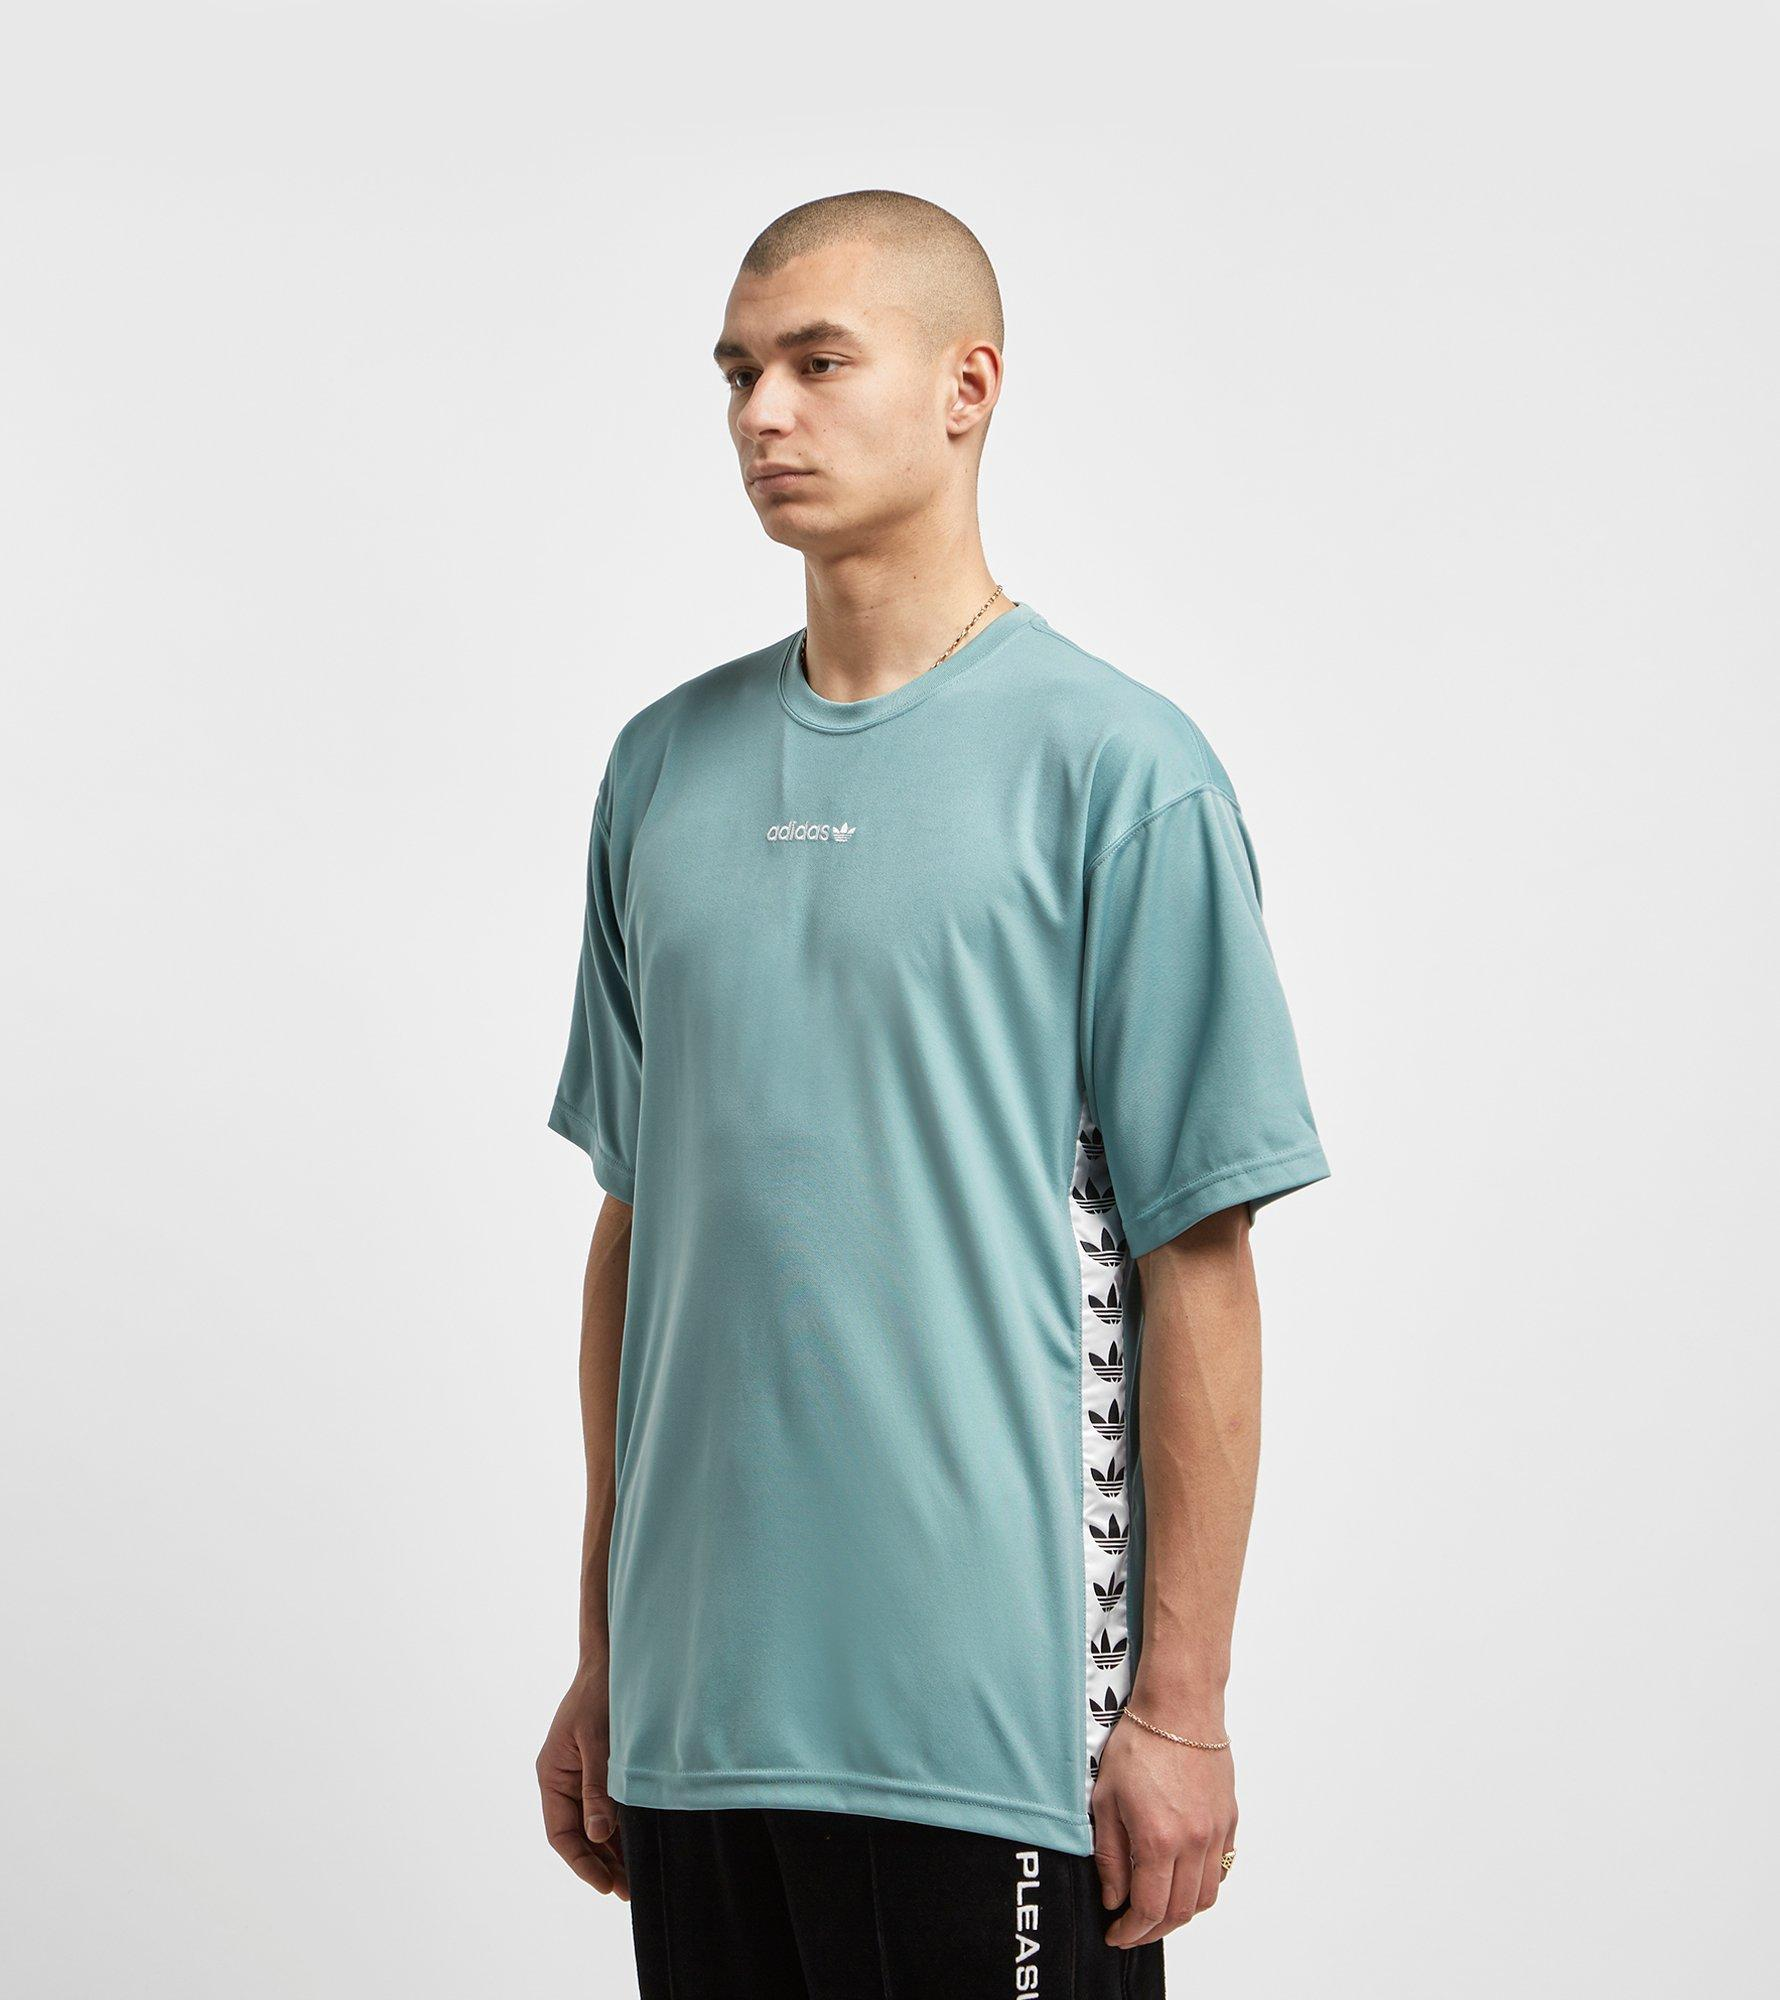 e0e355fd Adidas Originals - Gray Tnt Tape T-shirt - Size? Exclusive for Men -. View  fullscreen